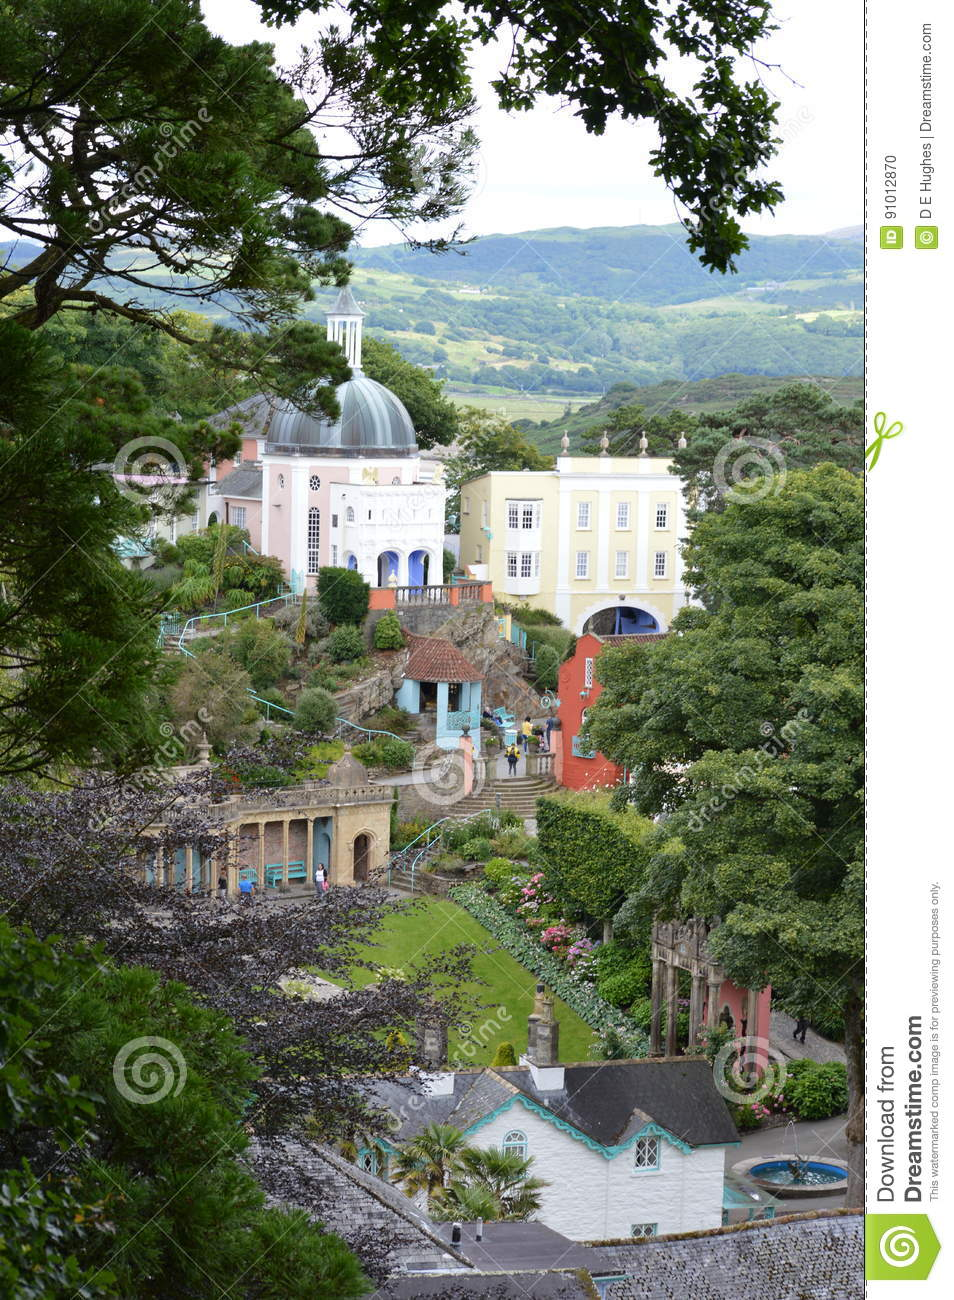 Portmerion Village in Wales